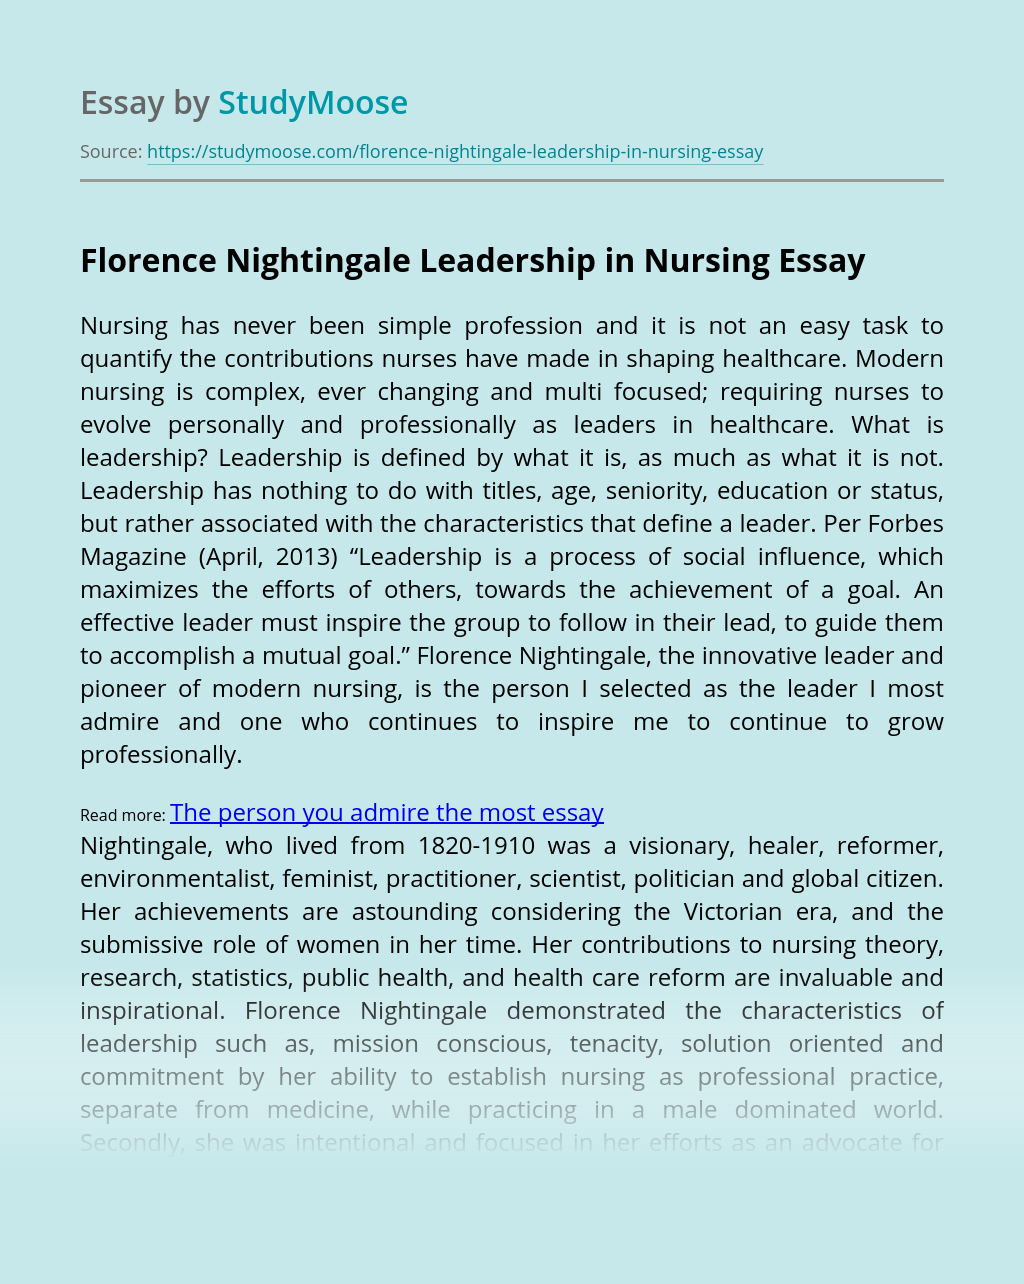 Florence Nightingale Leadership in Nursing